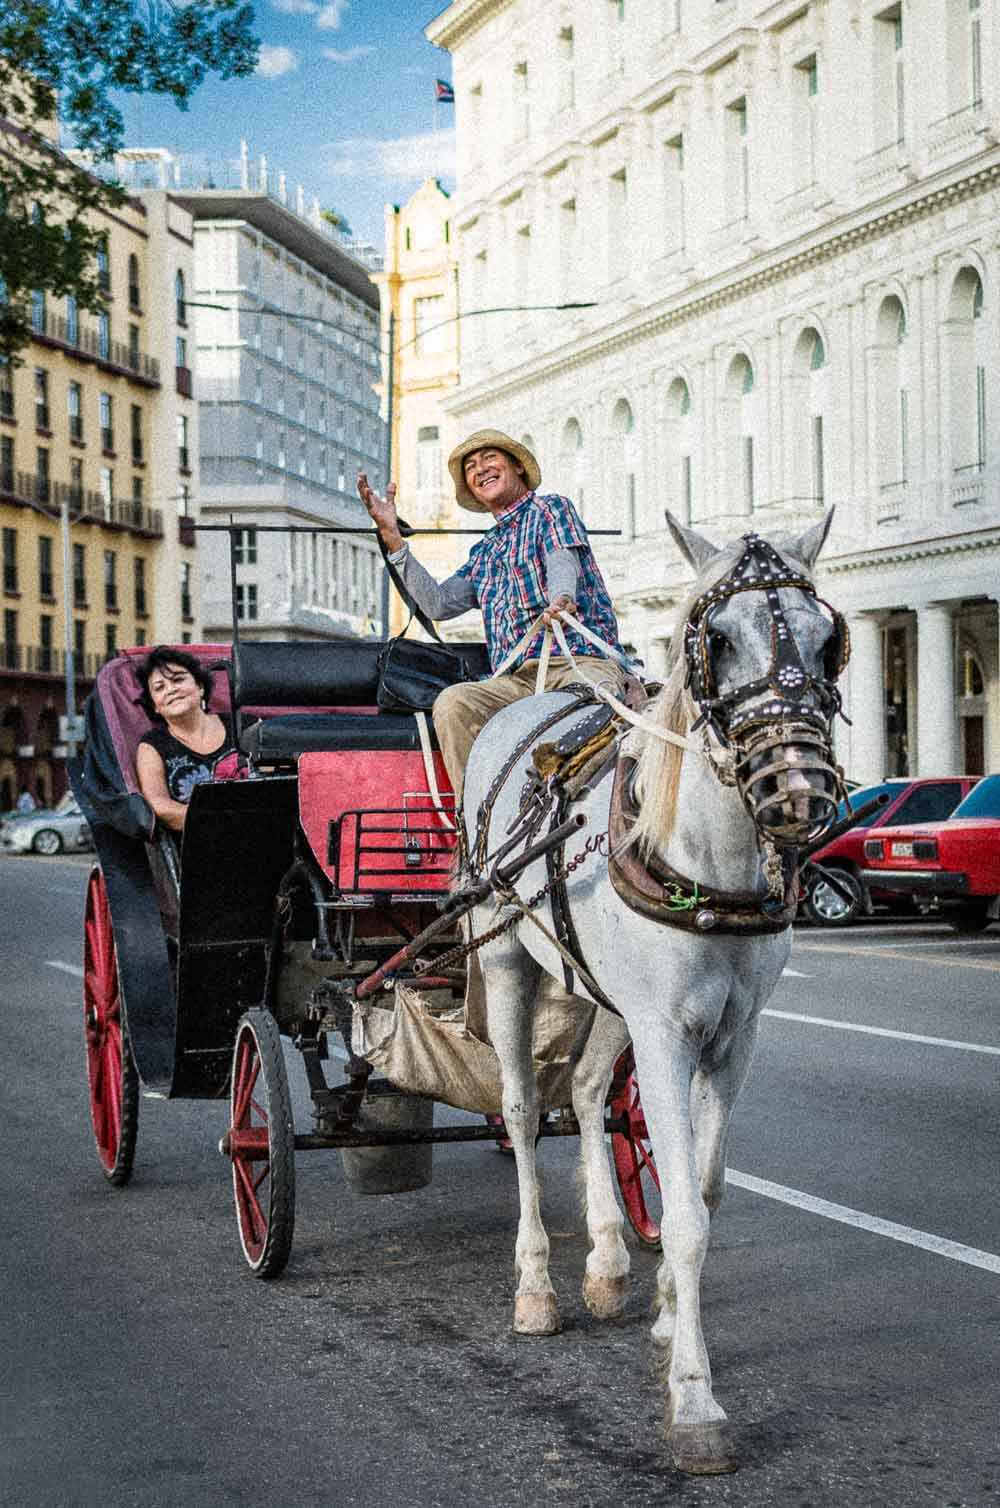 A happy horse carriage driver in Havana